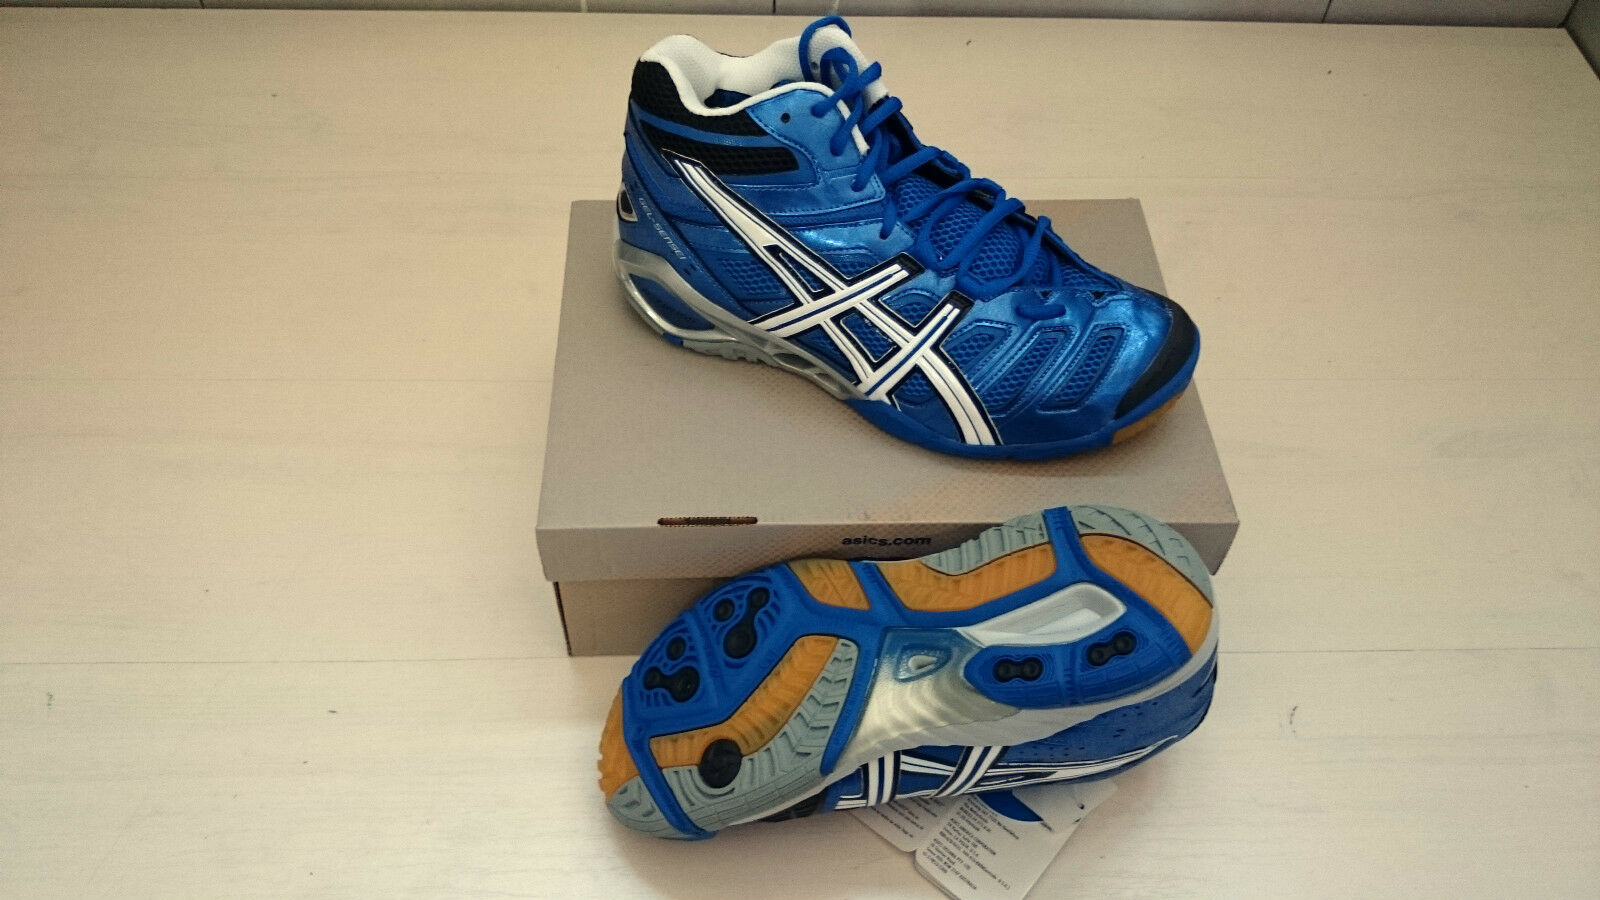 FW17 ASICS FIPAV shoes GEL SENSEI 4 MT CLASSIC PALLAVOLO SHOES MAN B202Y-4201